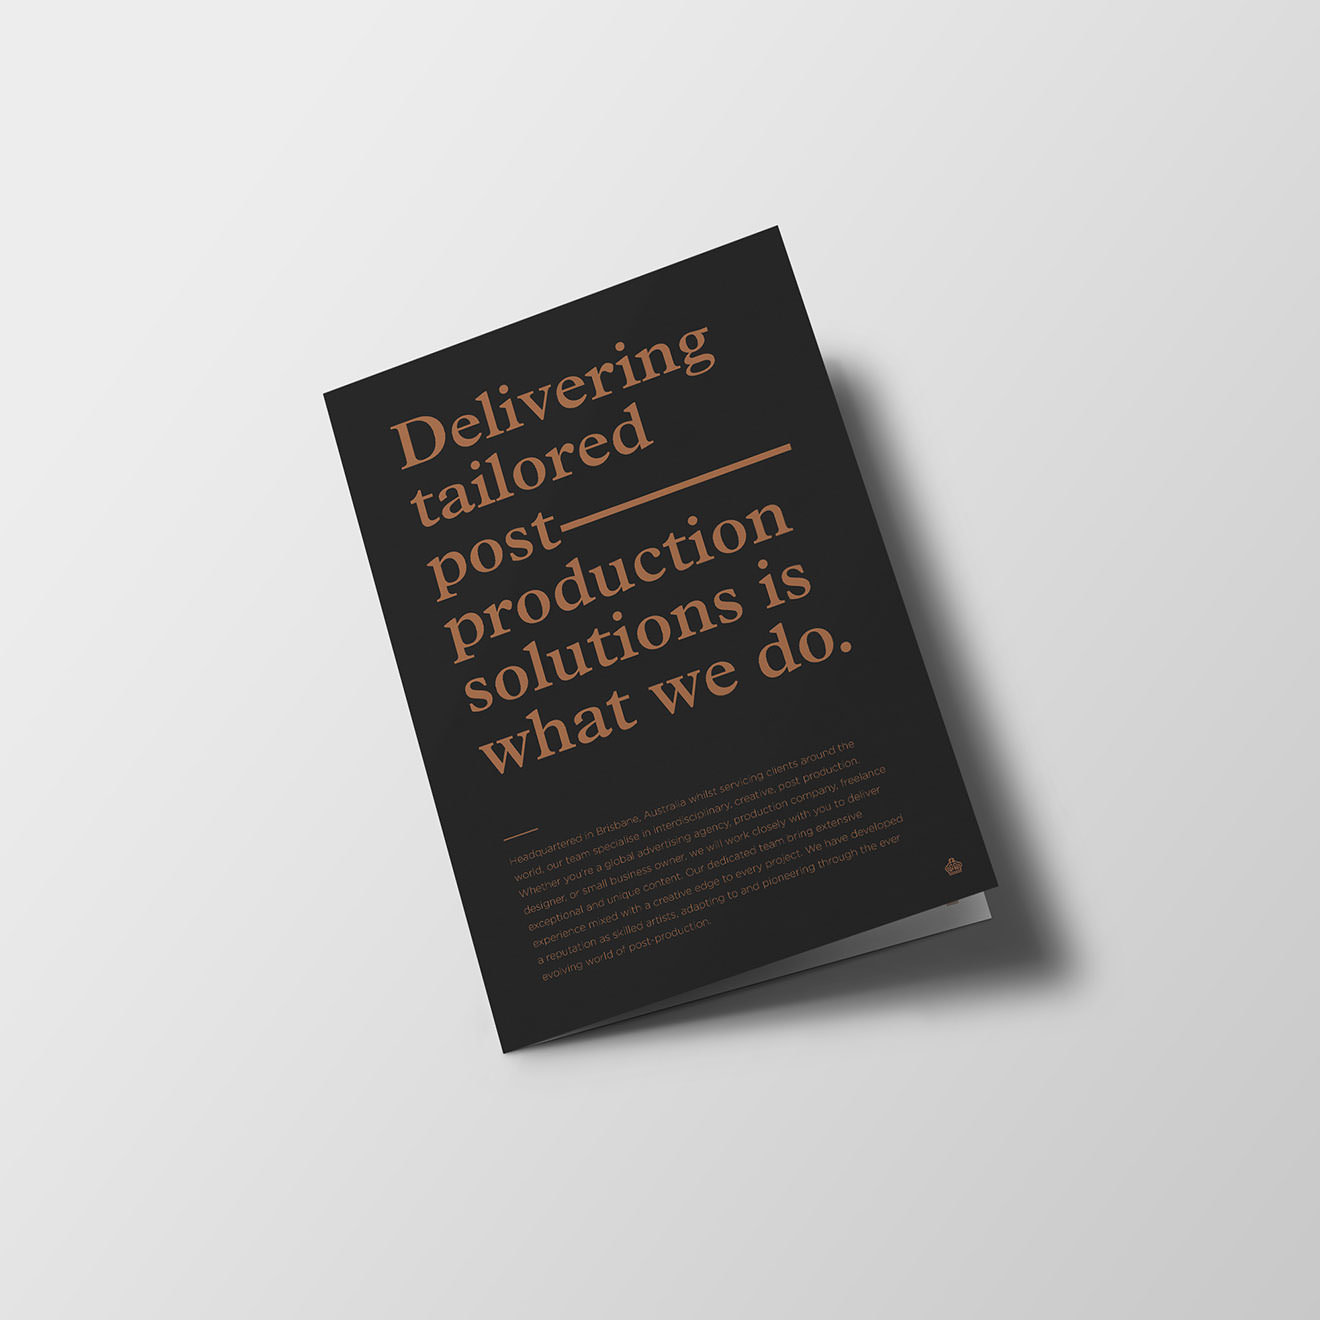 A black booklet that reads:Delivering tailored post production solutions is what we do.